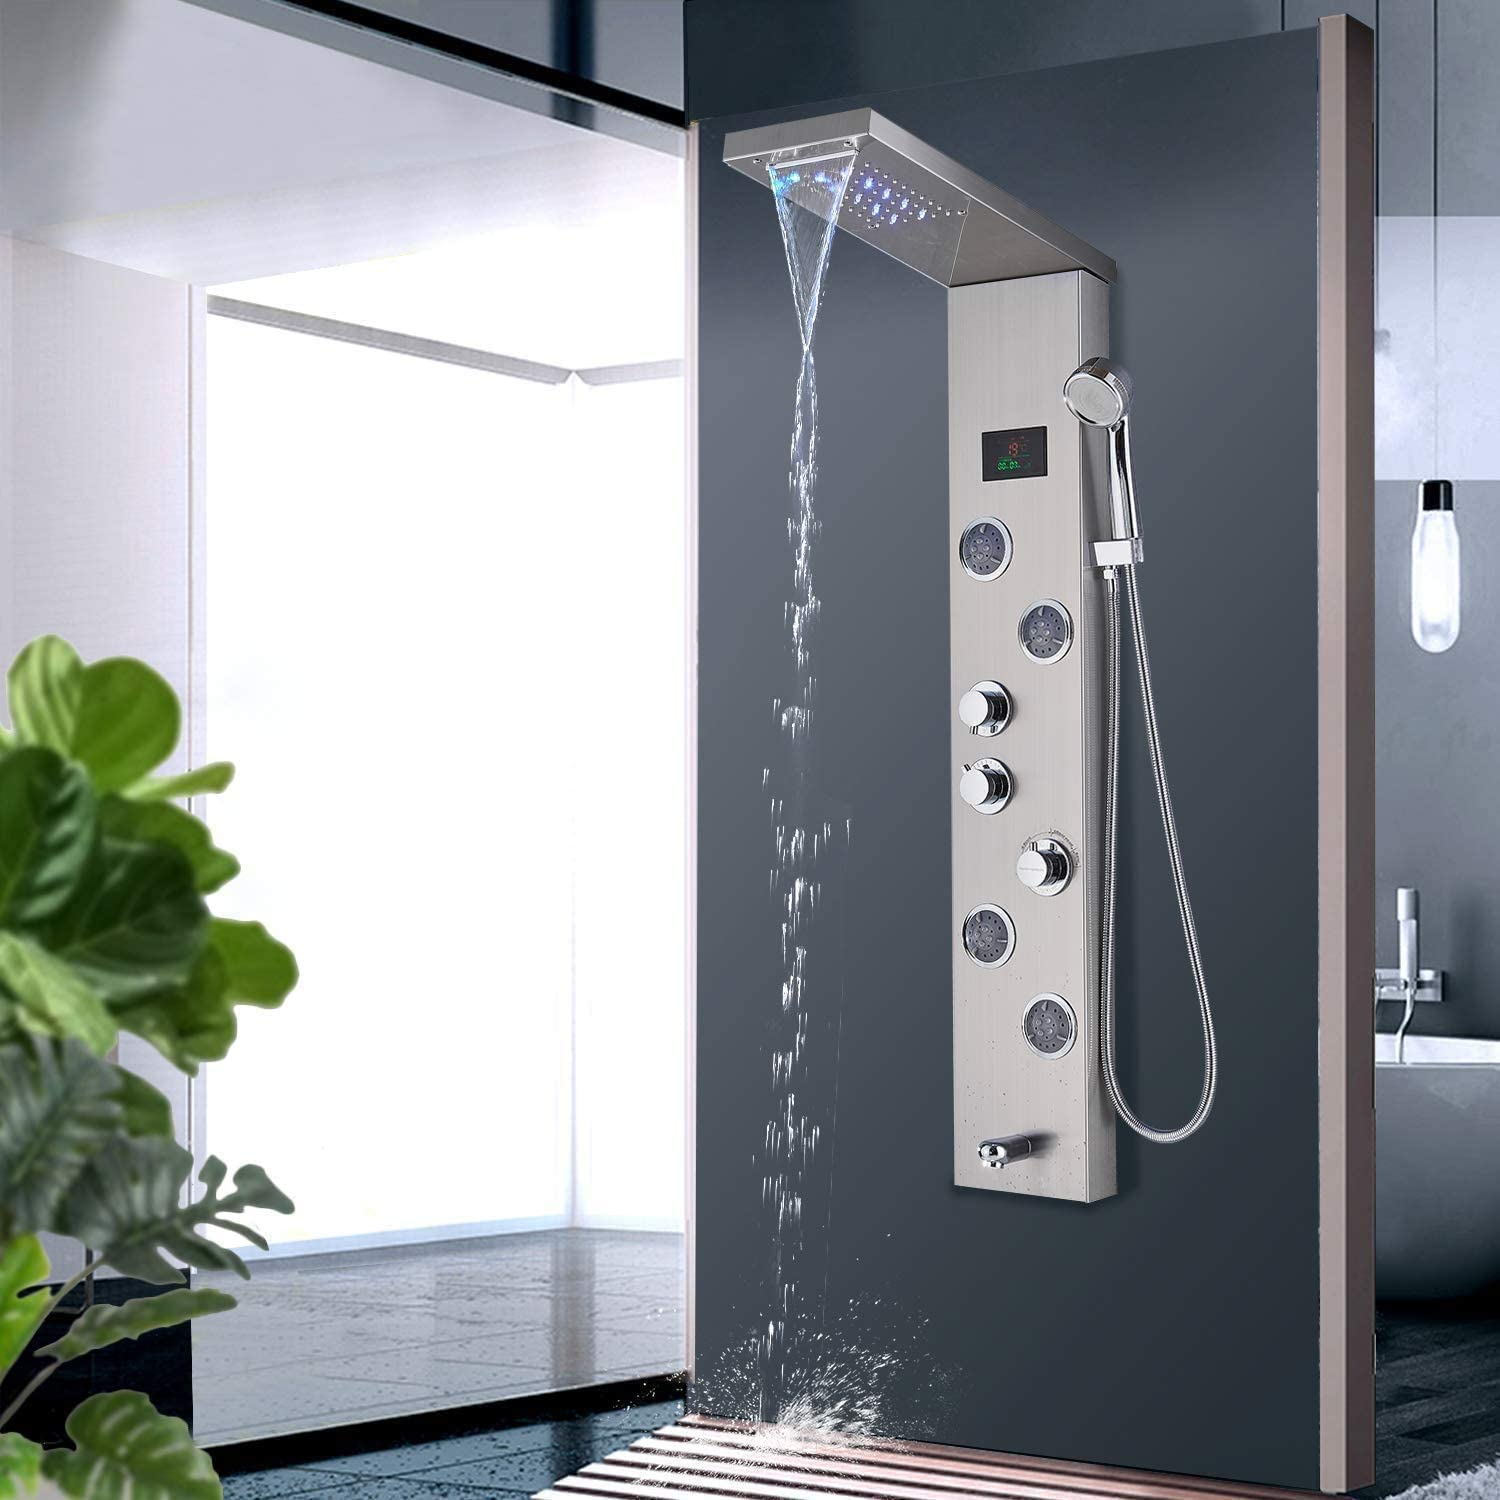 Zovajonia Led Shower Panel Tower System Bathroom Rainfall Waterfall Shower Head Rain Massage System With Body Jets Hand Shower Stainless Steel Shower System